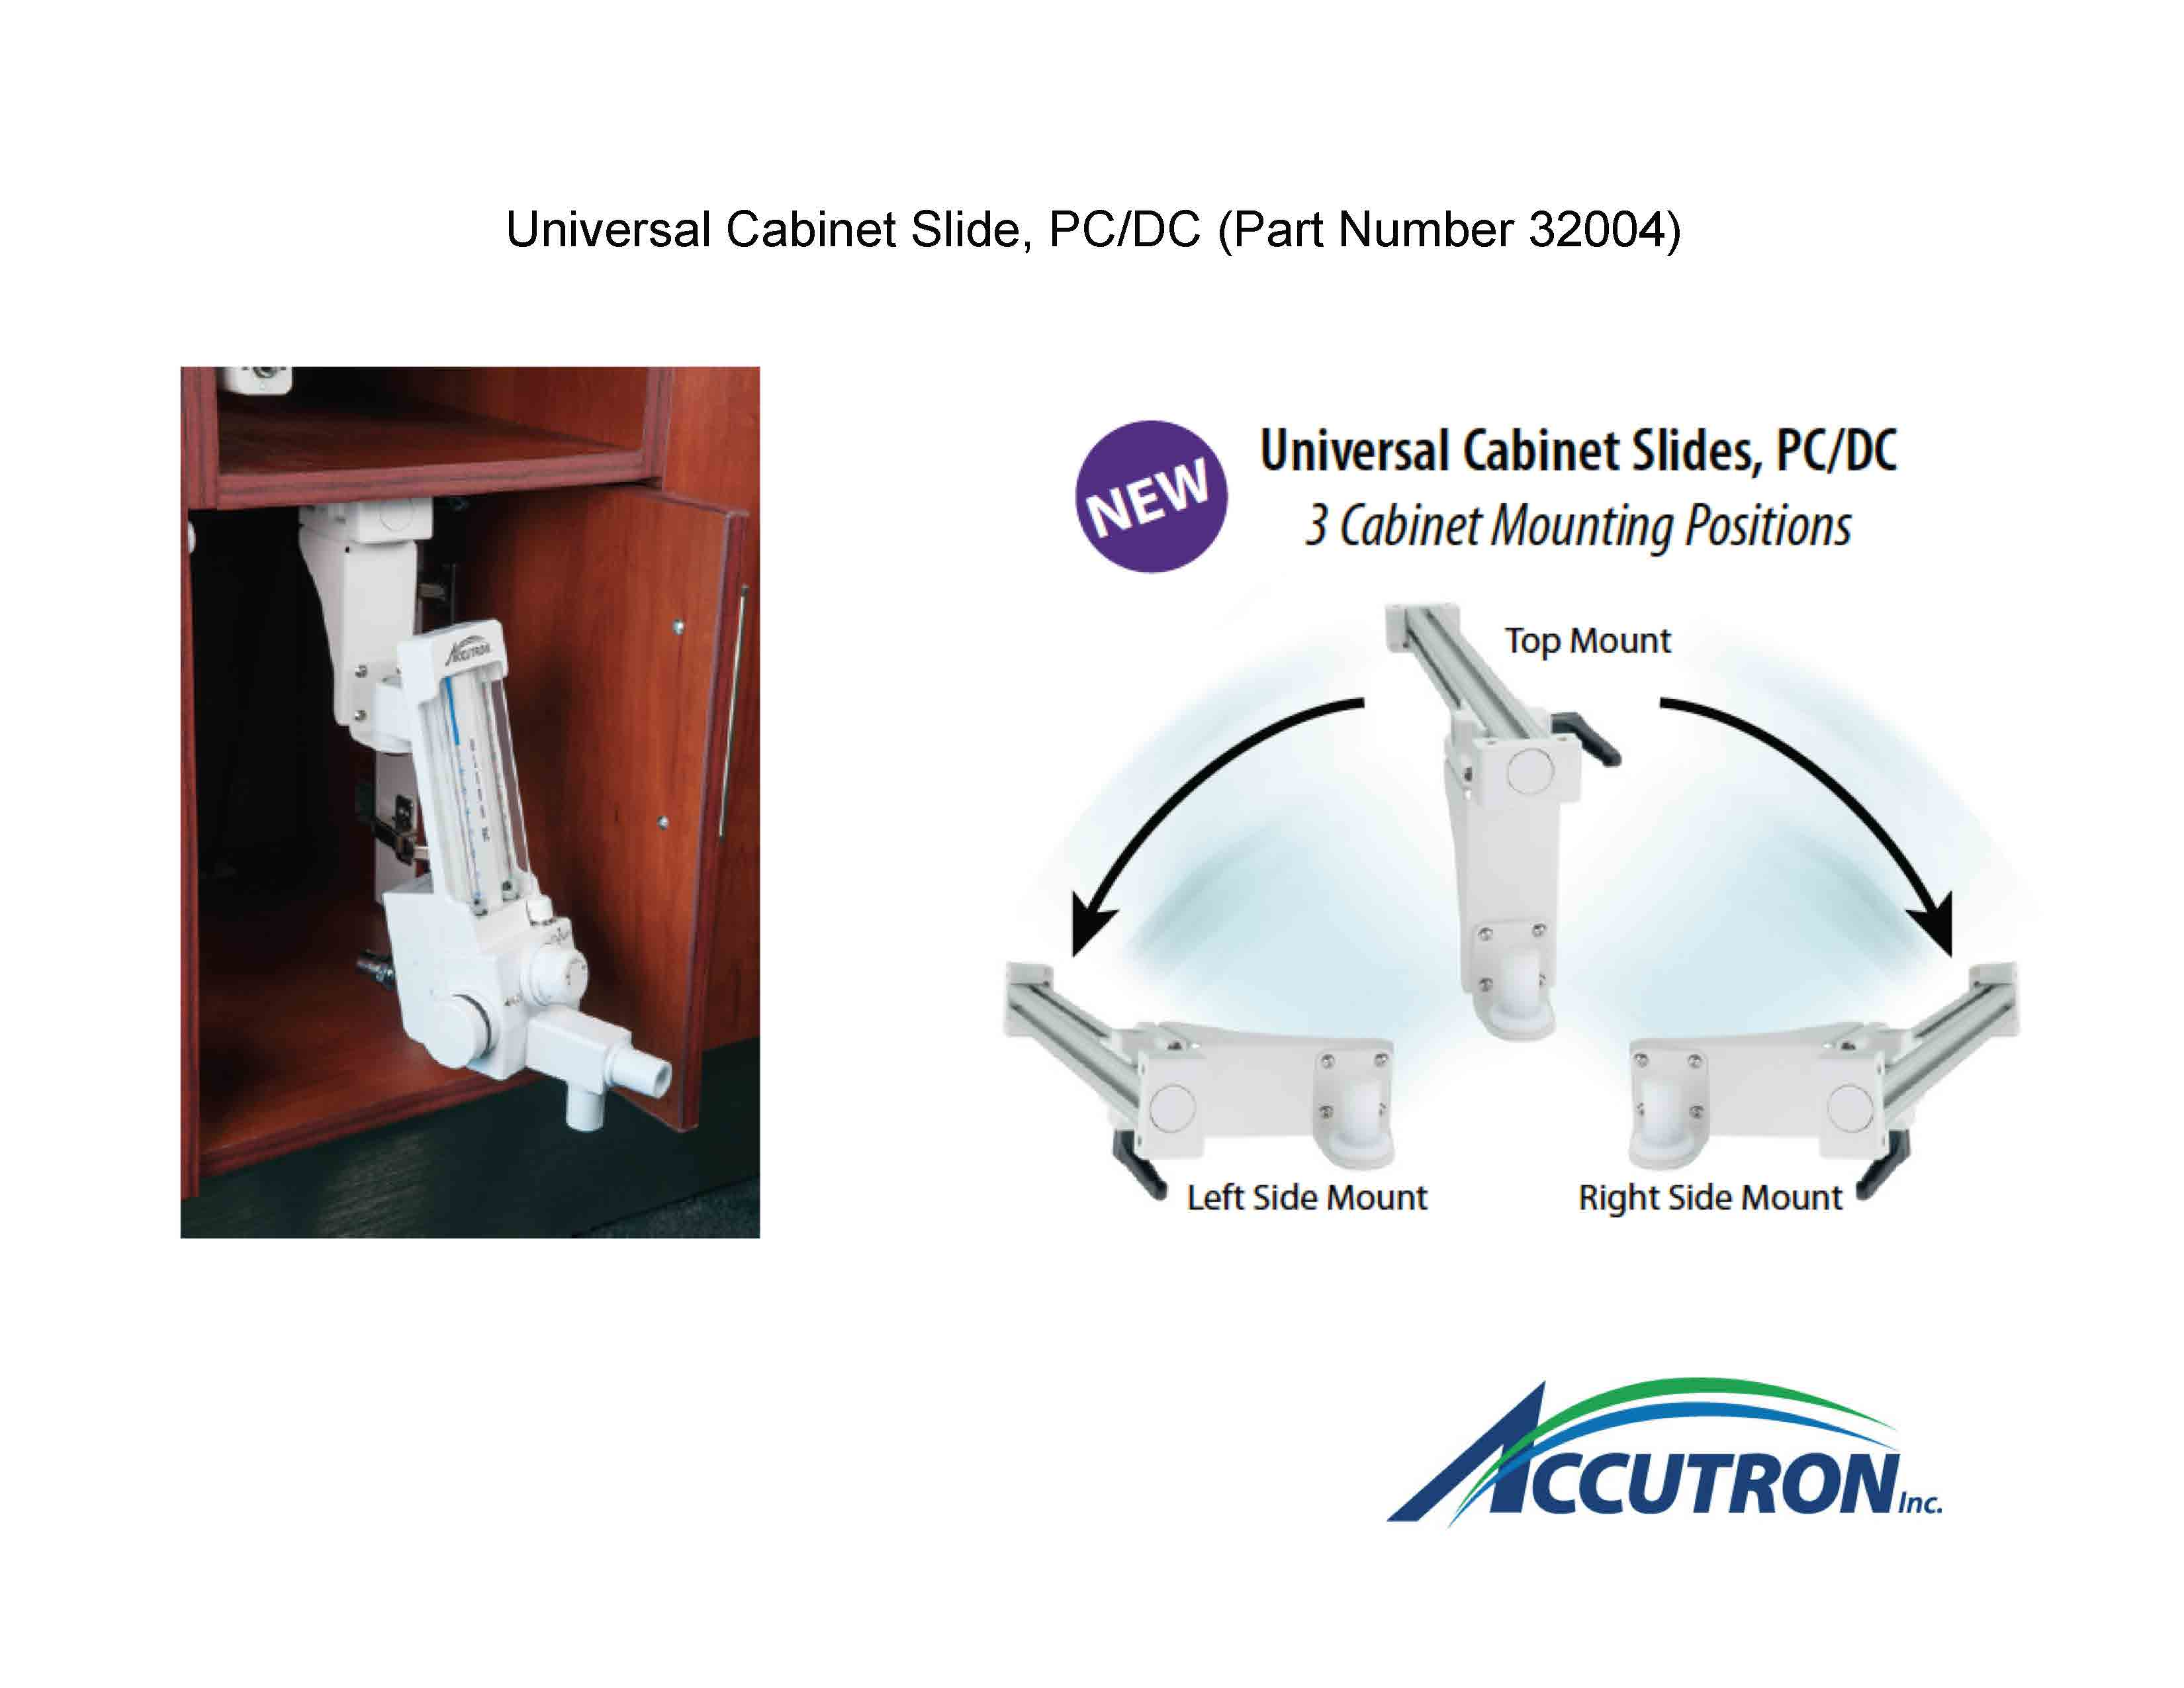 36500 US, Universal Cabinet Slide PC DC Mounting Options